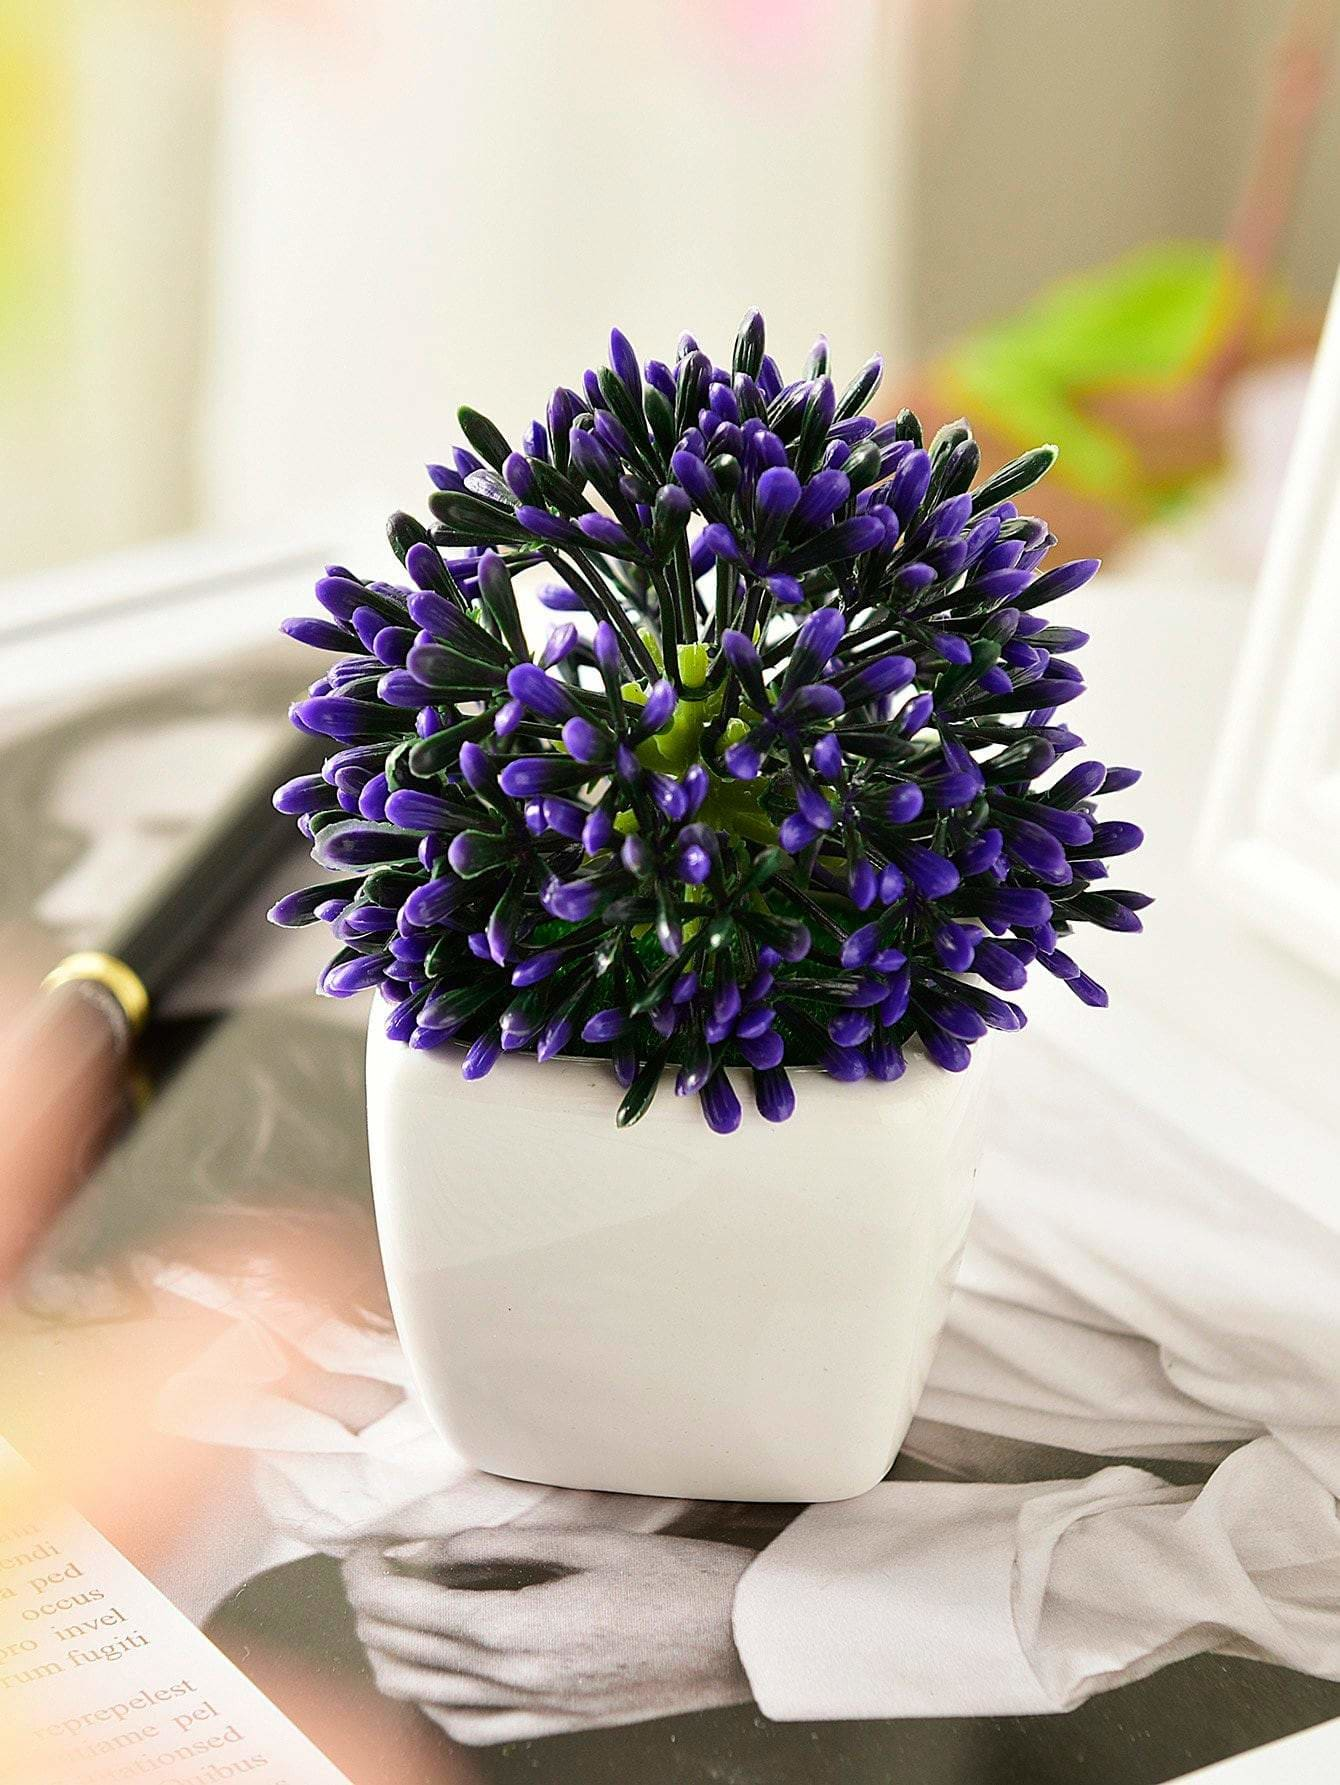 Artificial Plastic Flower In Ceramic Pot - Vases & Artificial Flowers